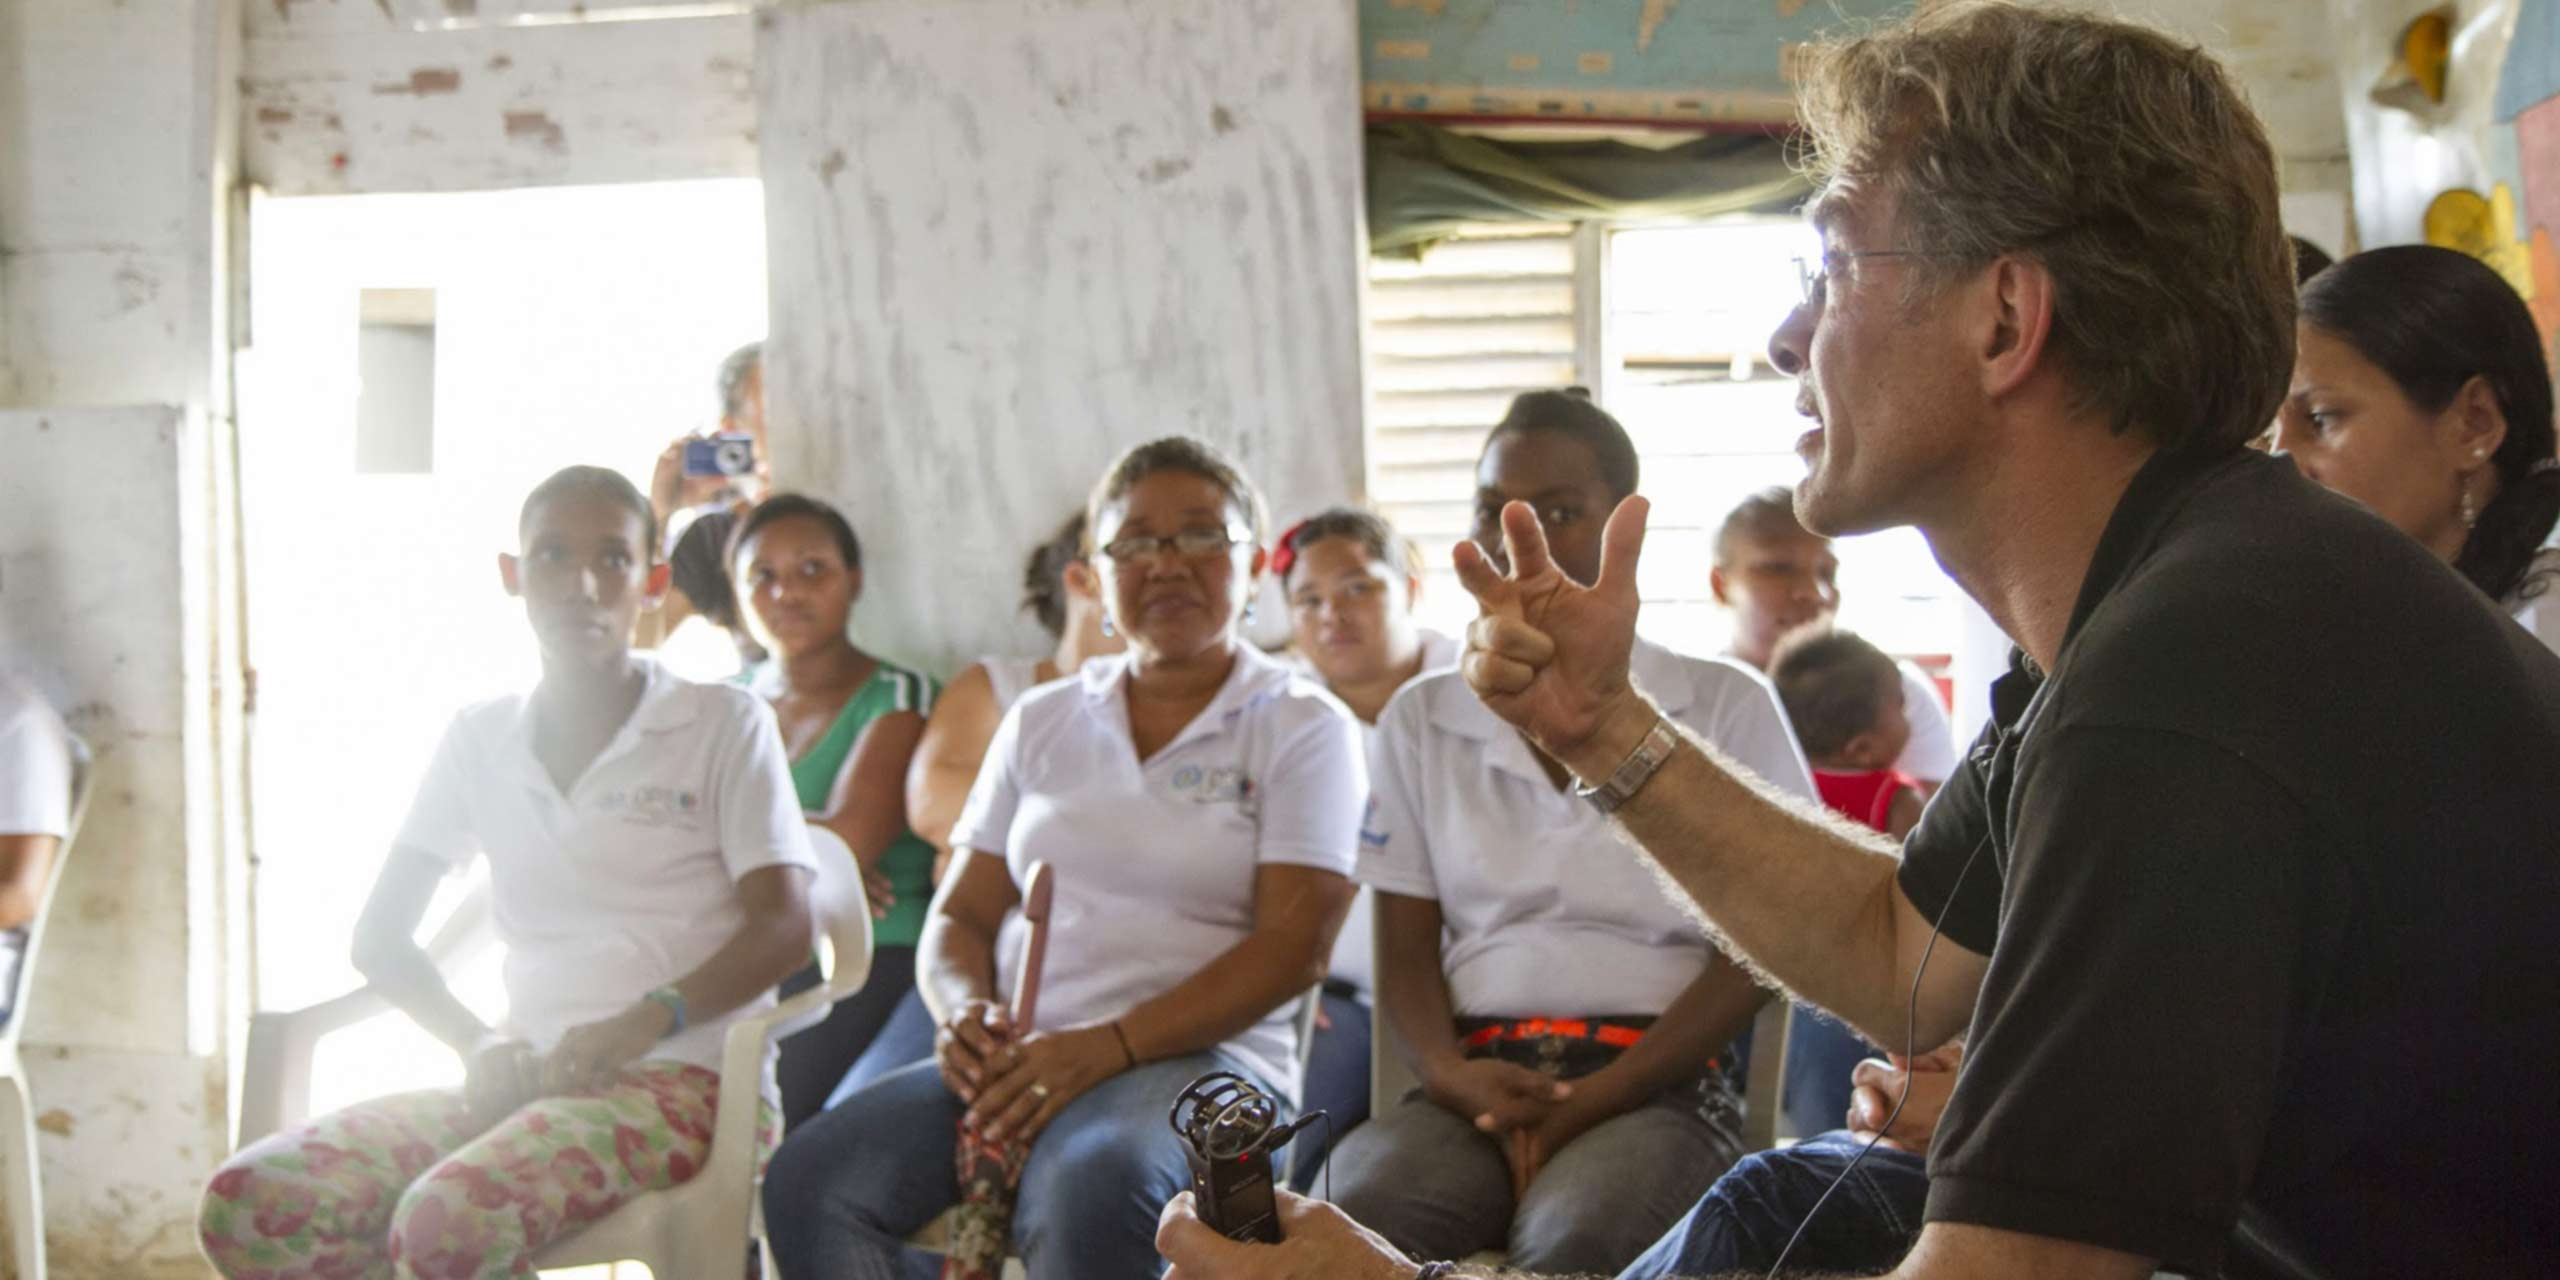 http://s12982.pcdn.co/wp-content/uploads/2014/03/fundacion-capital-sl3.jpg